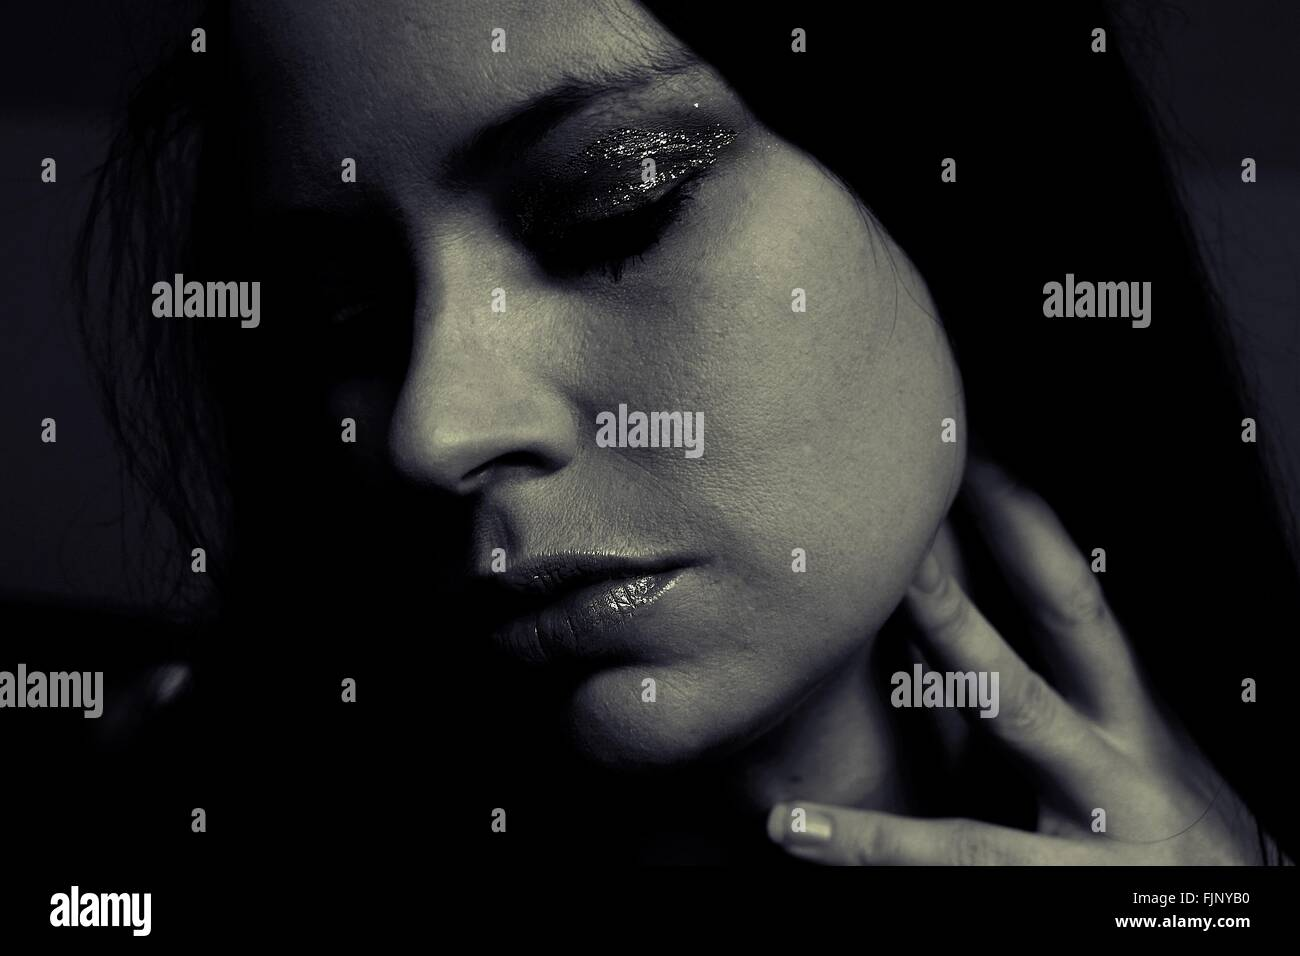 Close-Up Of Thoughtful Young Woman Against Black Background - Stock Image